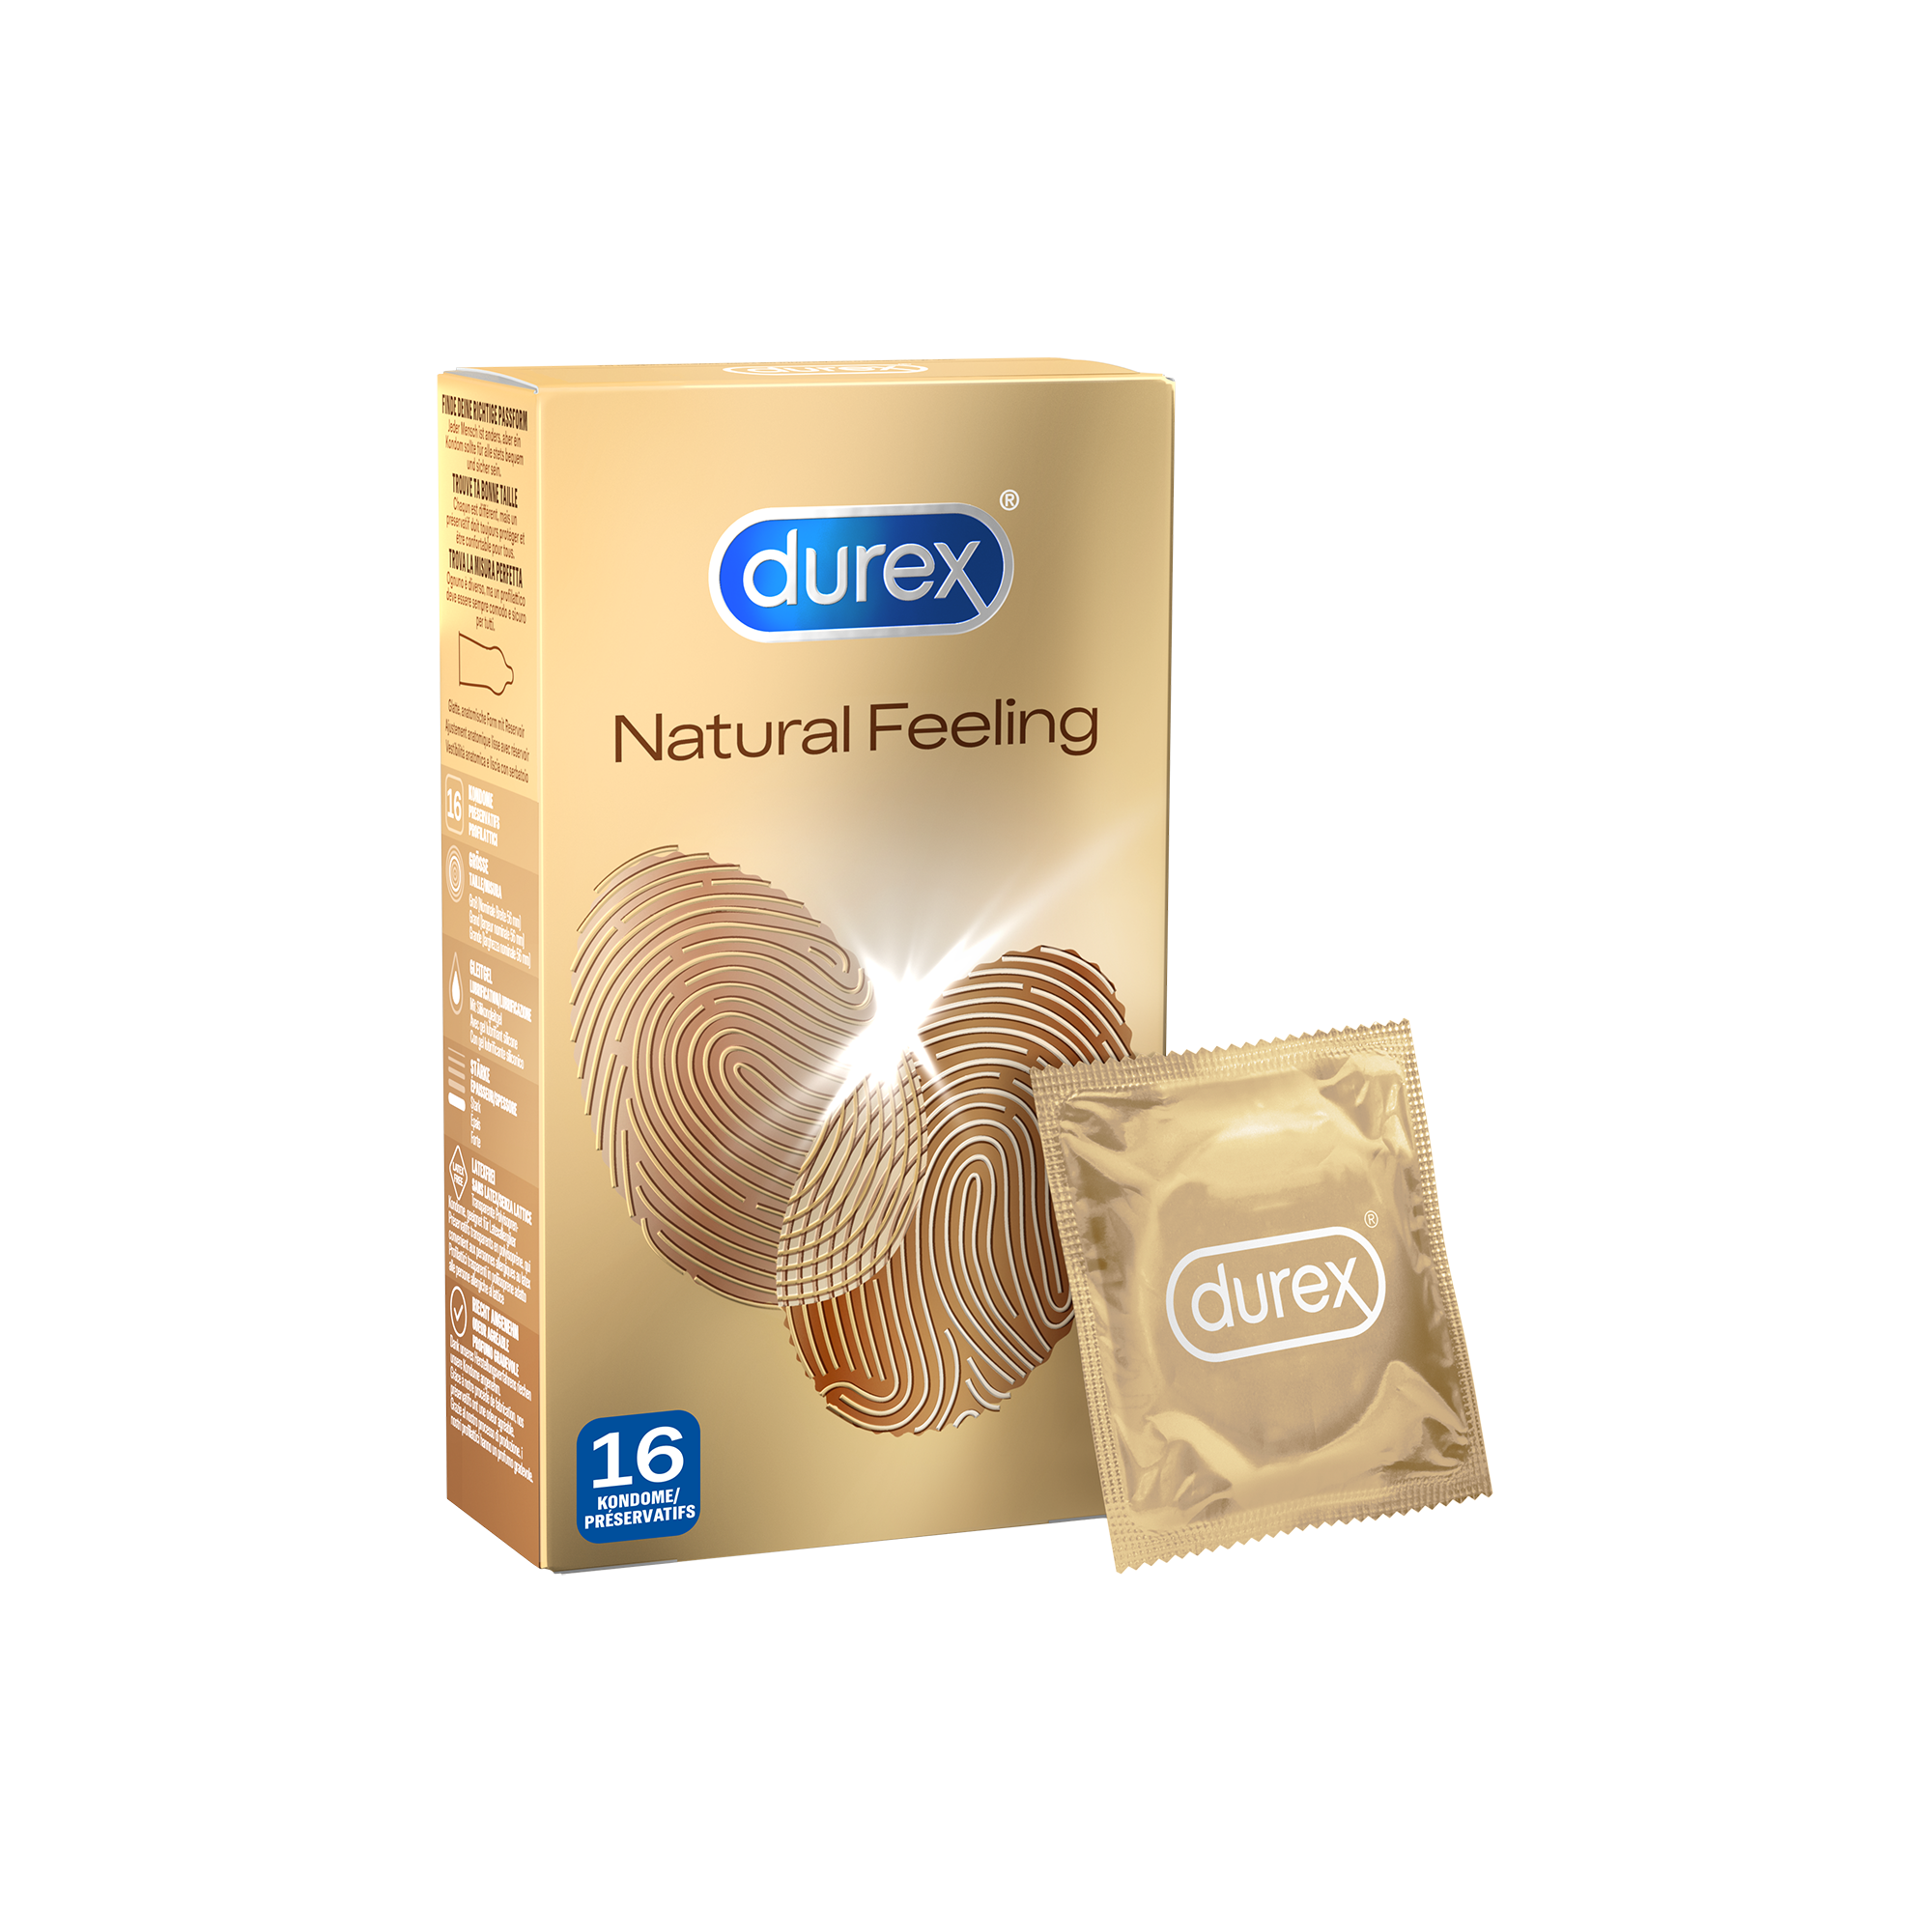 Durex DE - Natural Feeling 16 Kondomes